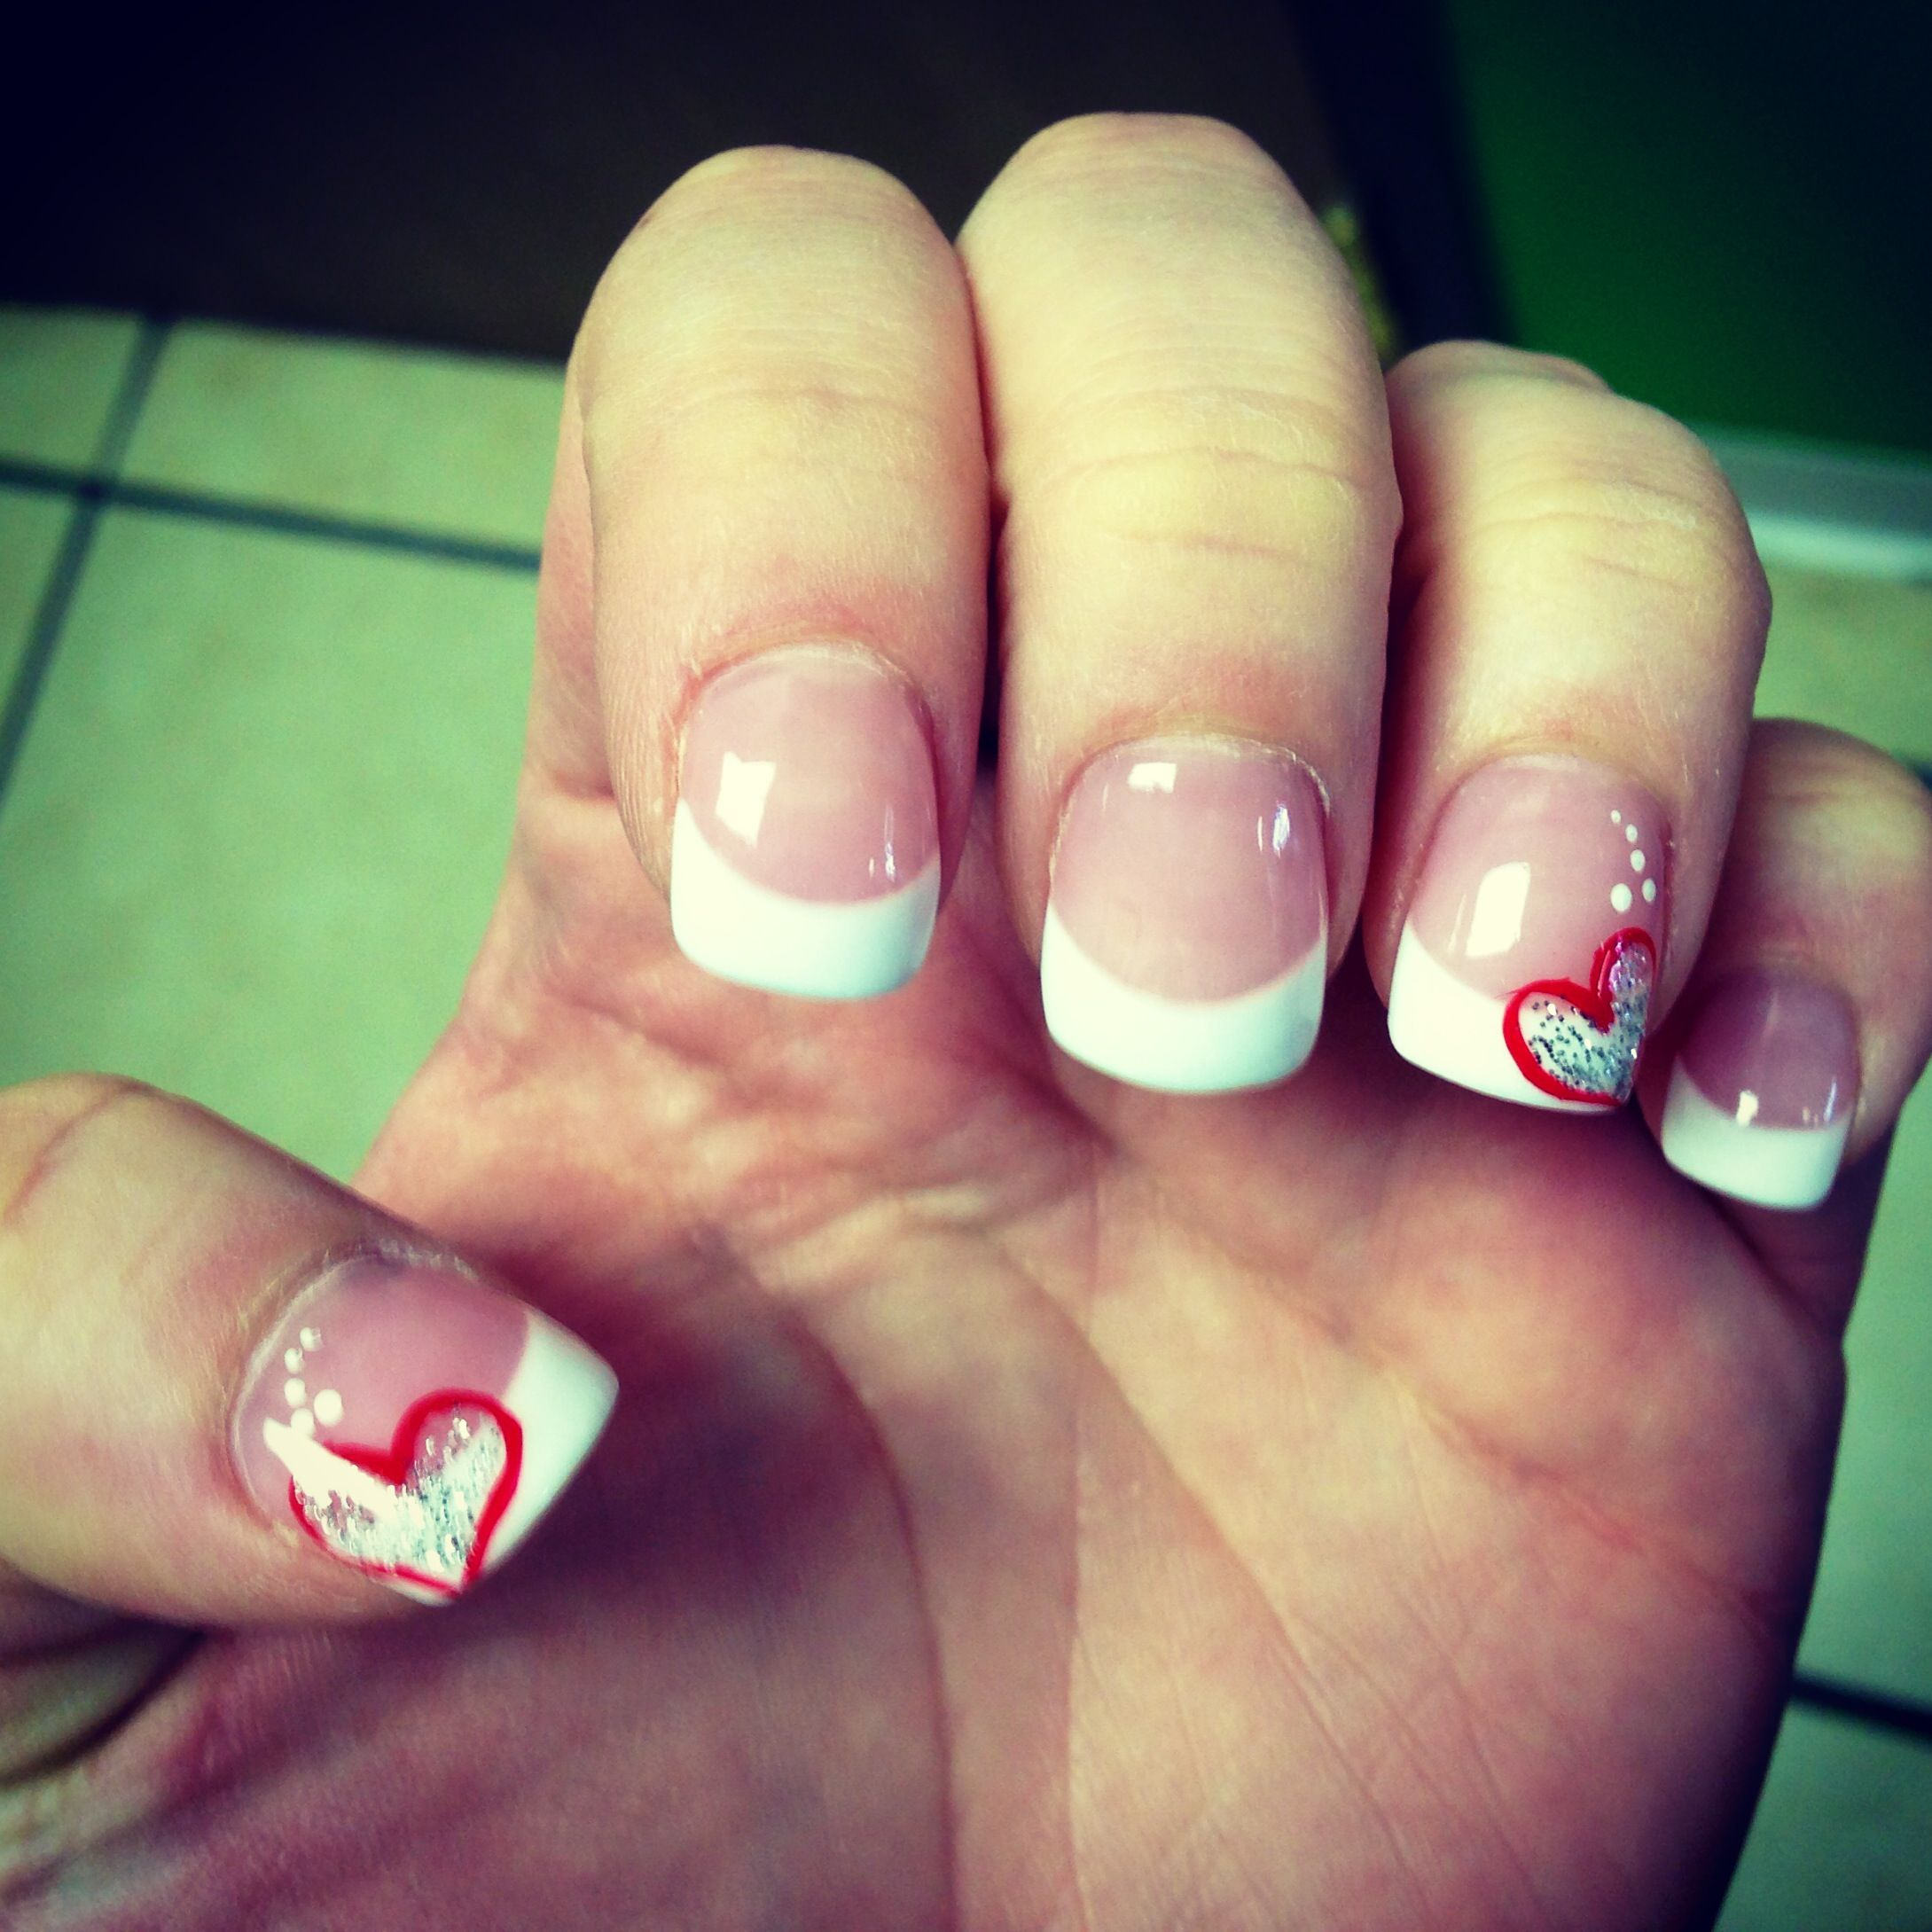 Cute french tip manicure with red hearts nail nail makeup and manicure valentines day nails prinsesfo Images